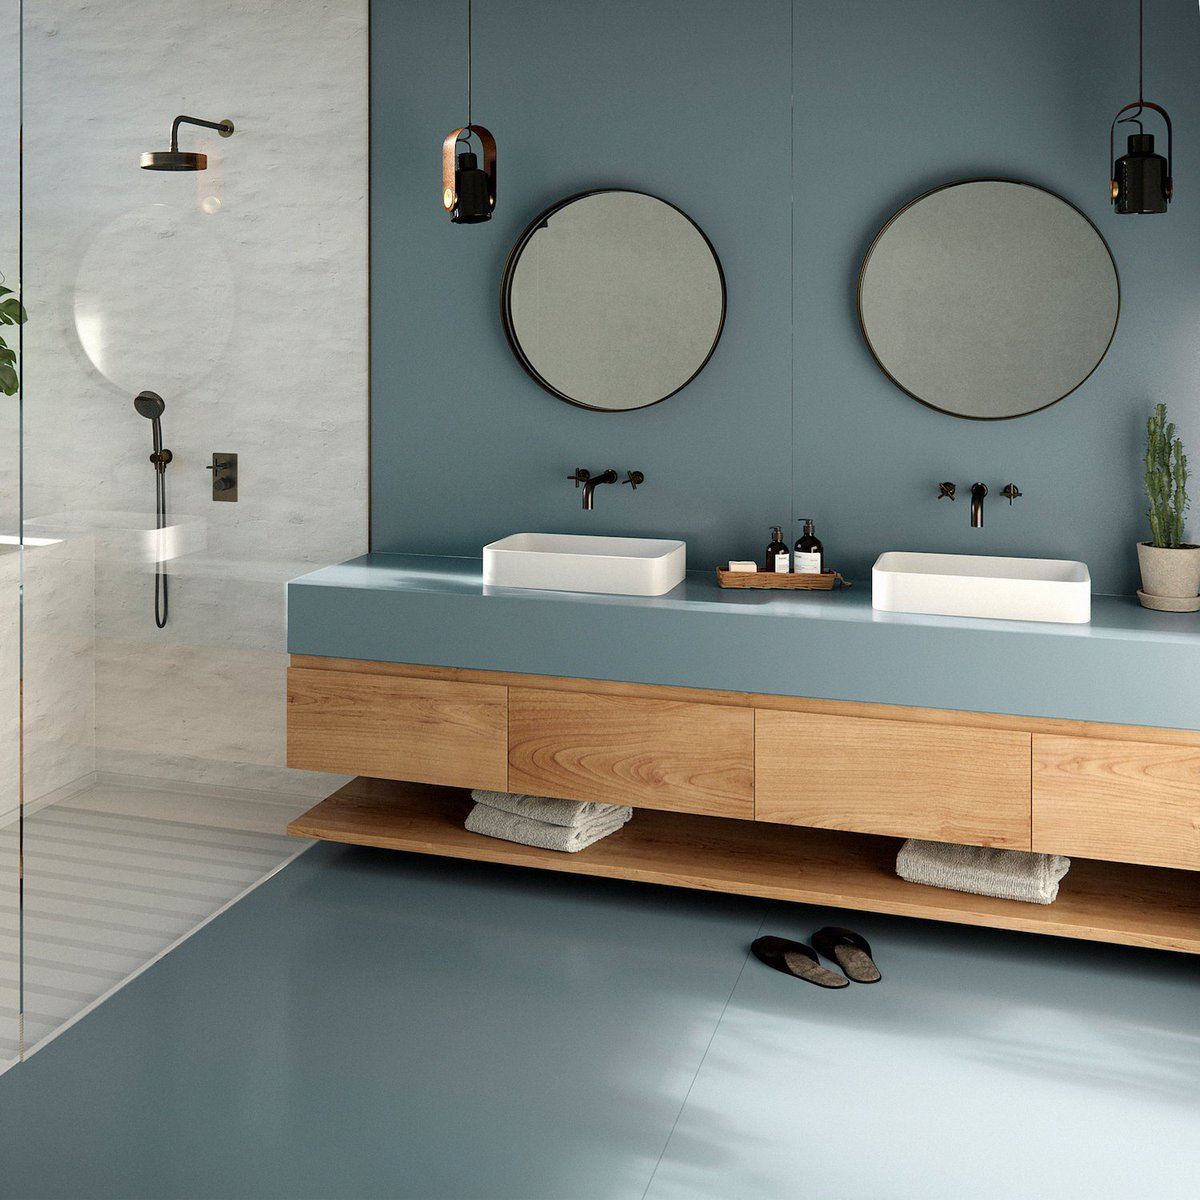 🔵 In the kitchen, in the bathroom, in the living room… blue is a safe bet to decorate any room. Would you like us to prove it? Click on the photos below and get inspired by #Silestone Cala Blue deep blue. Visit bit.ly/3gQlNrv #SunlitDays #HybriQTechnology